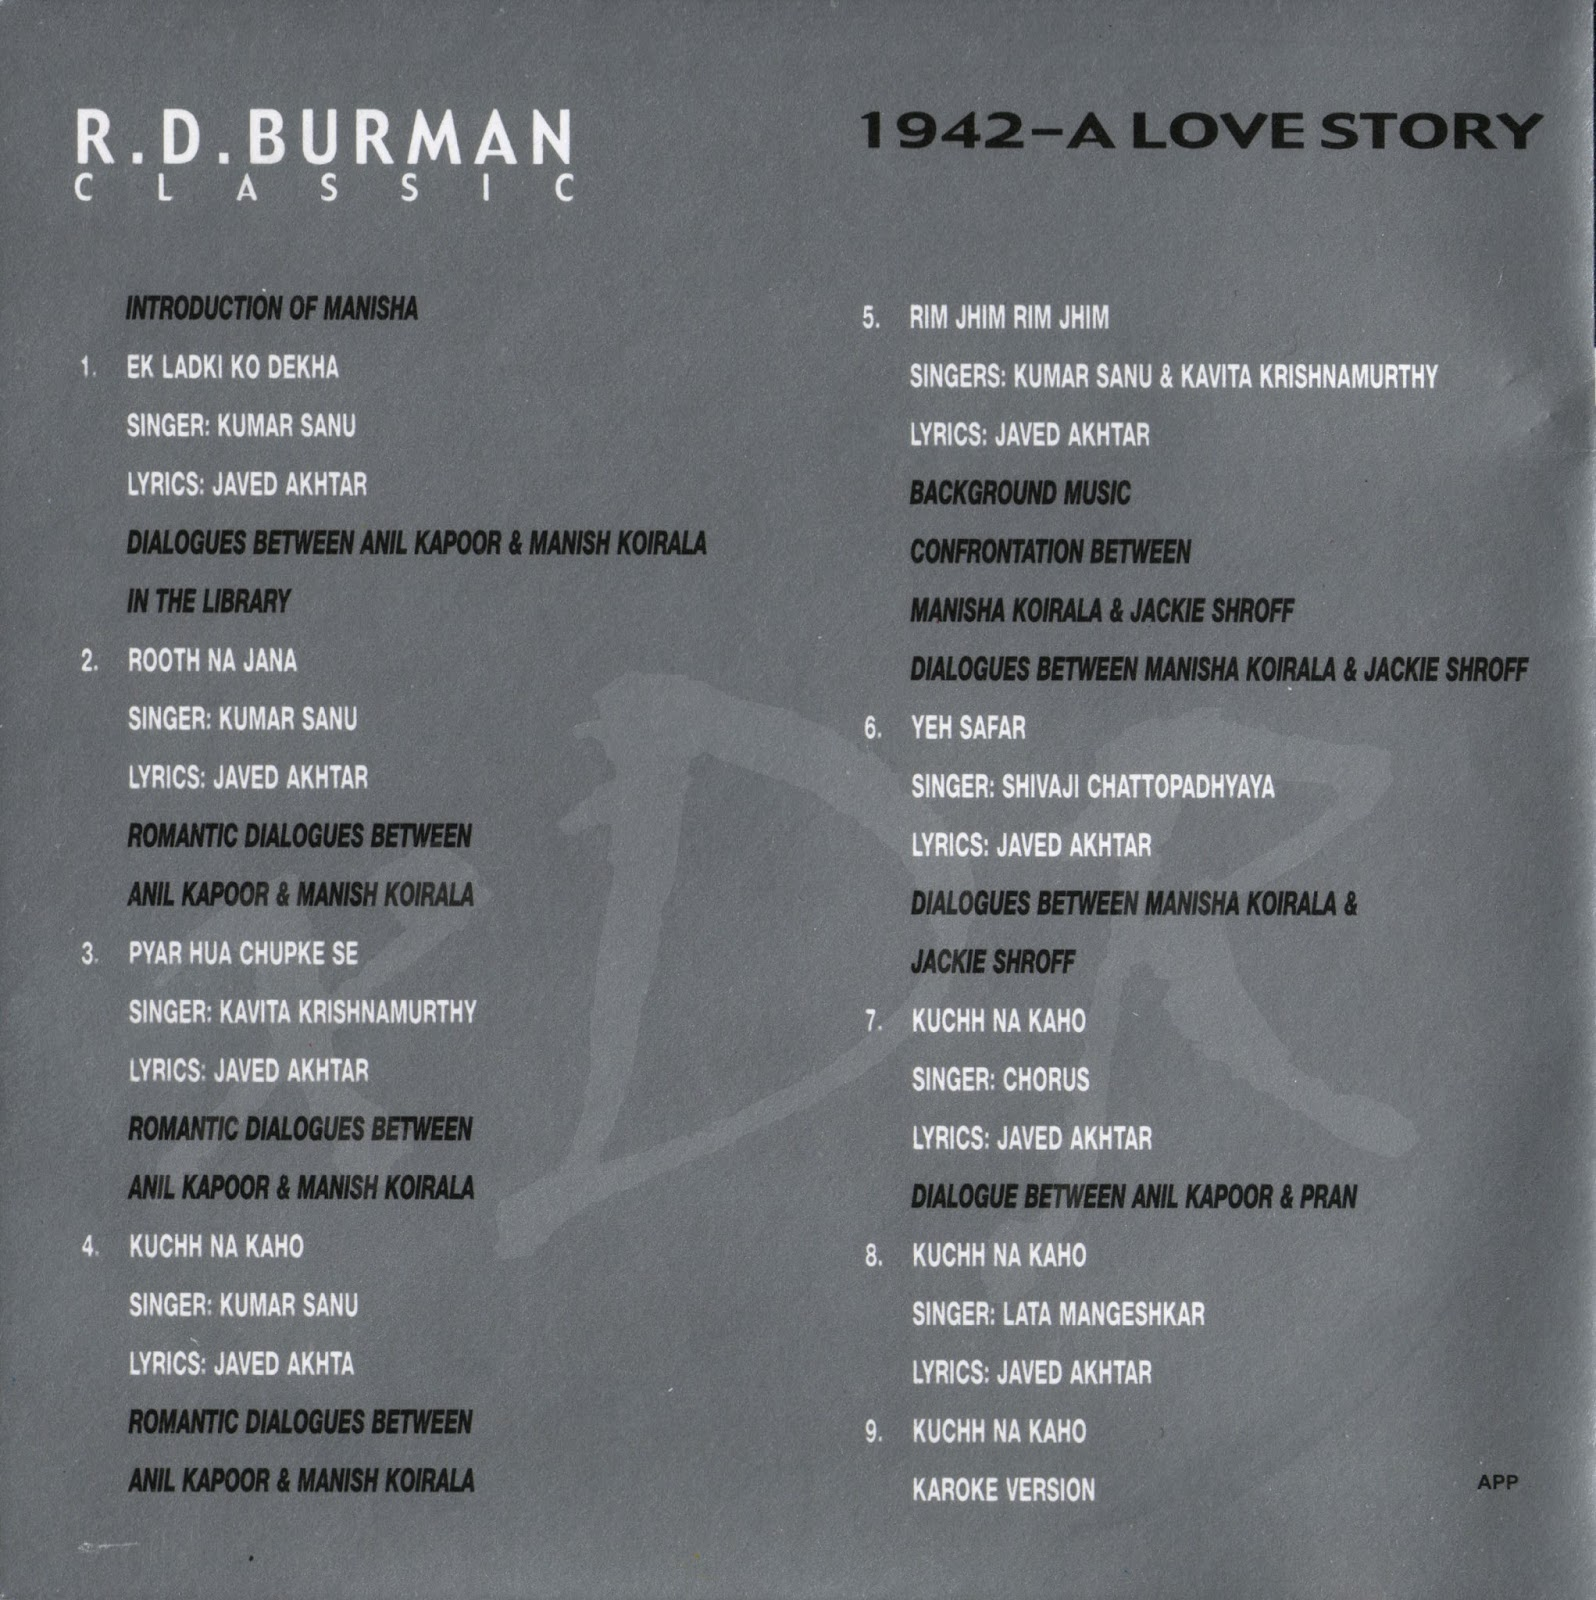 1942 a love story 1994 mp3 vbr 320kbps - Bridge of spies 2015 movie